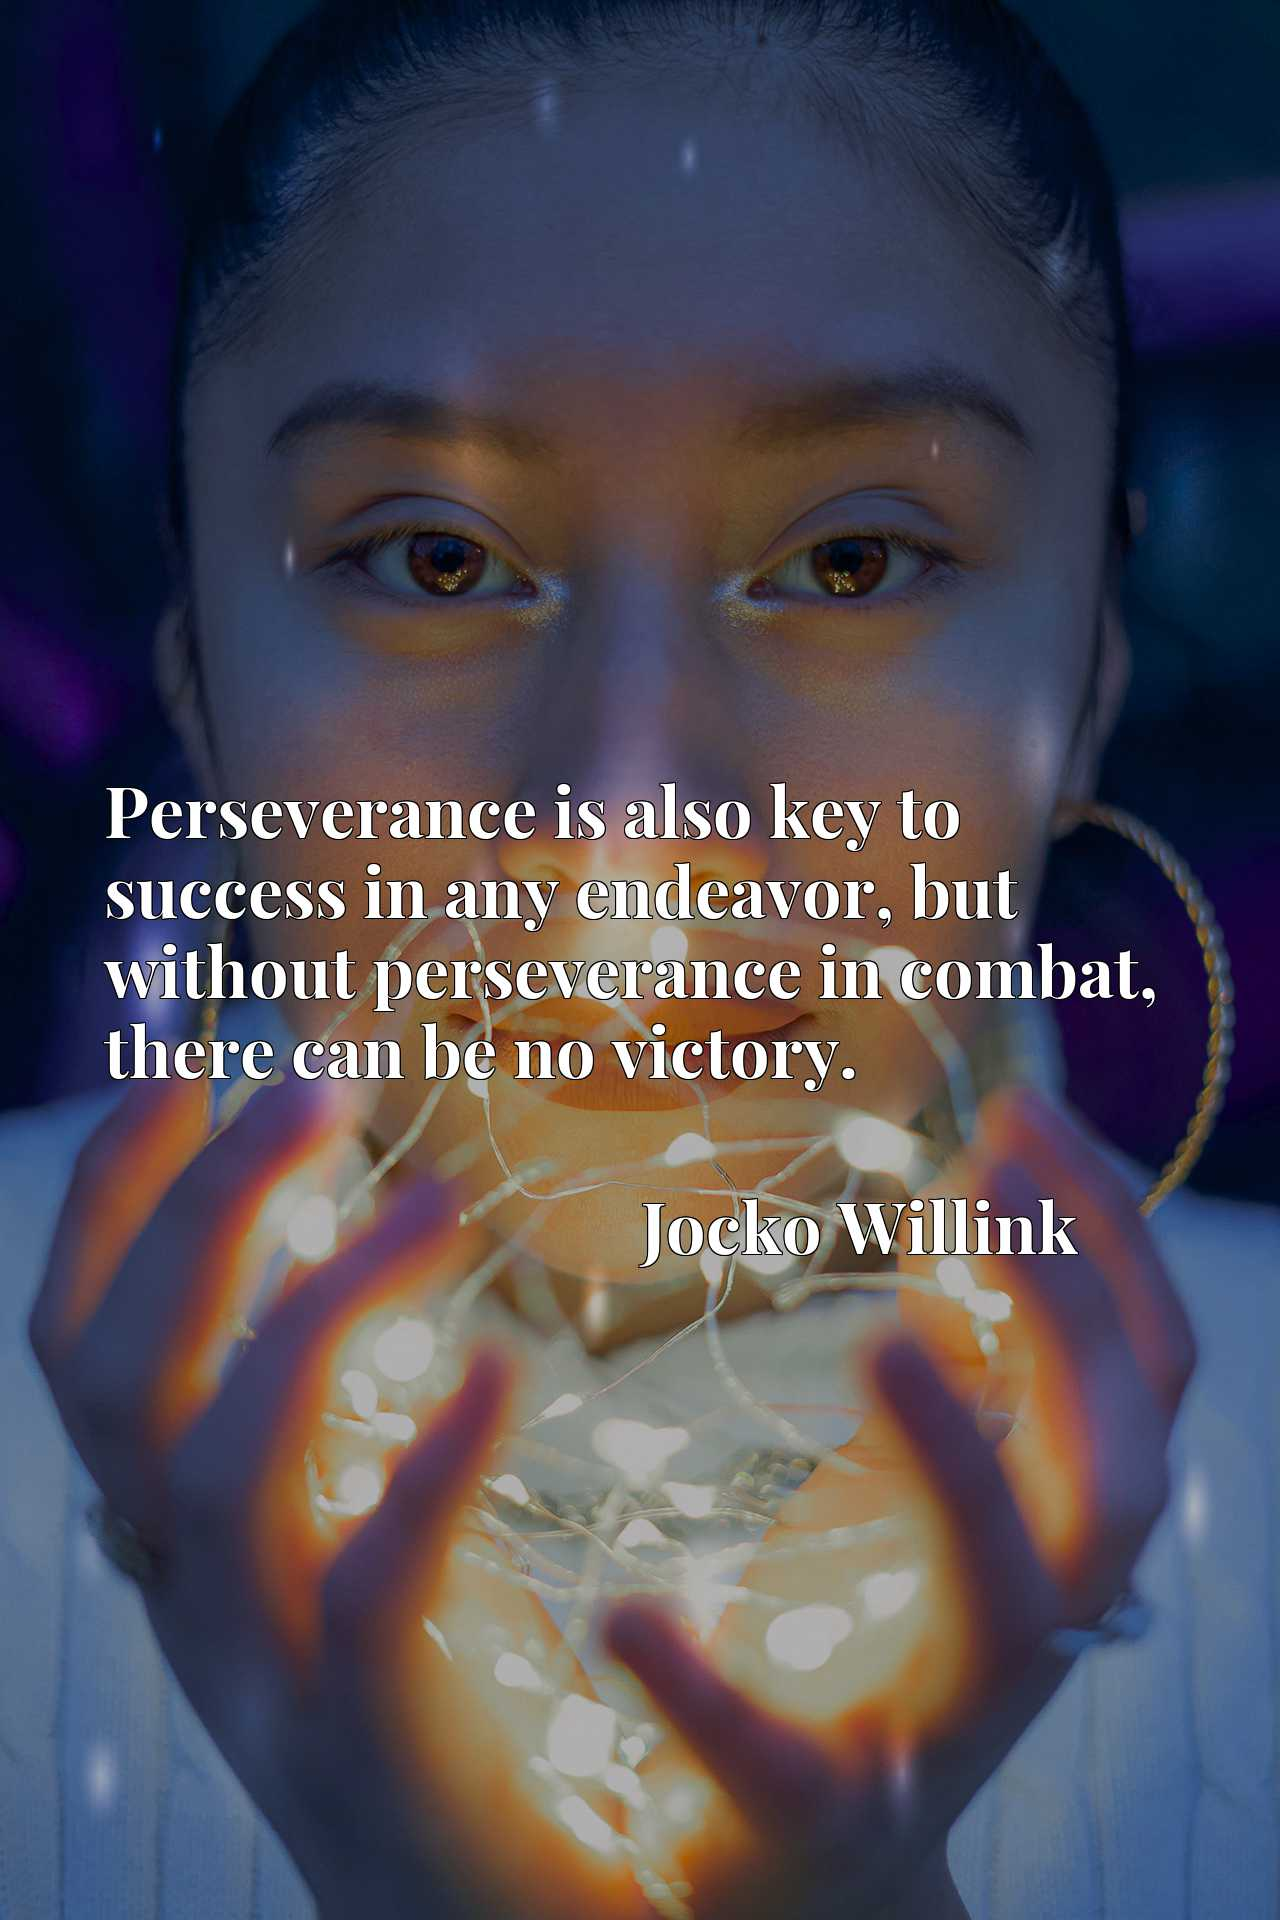 Perseverance is also key to success in any endeavor, but without perseverance in combat, there can be no victory.